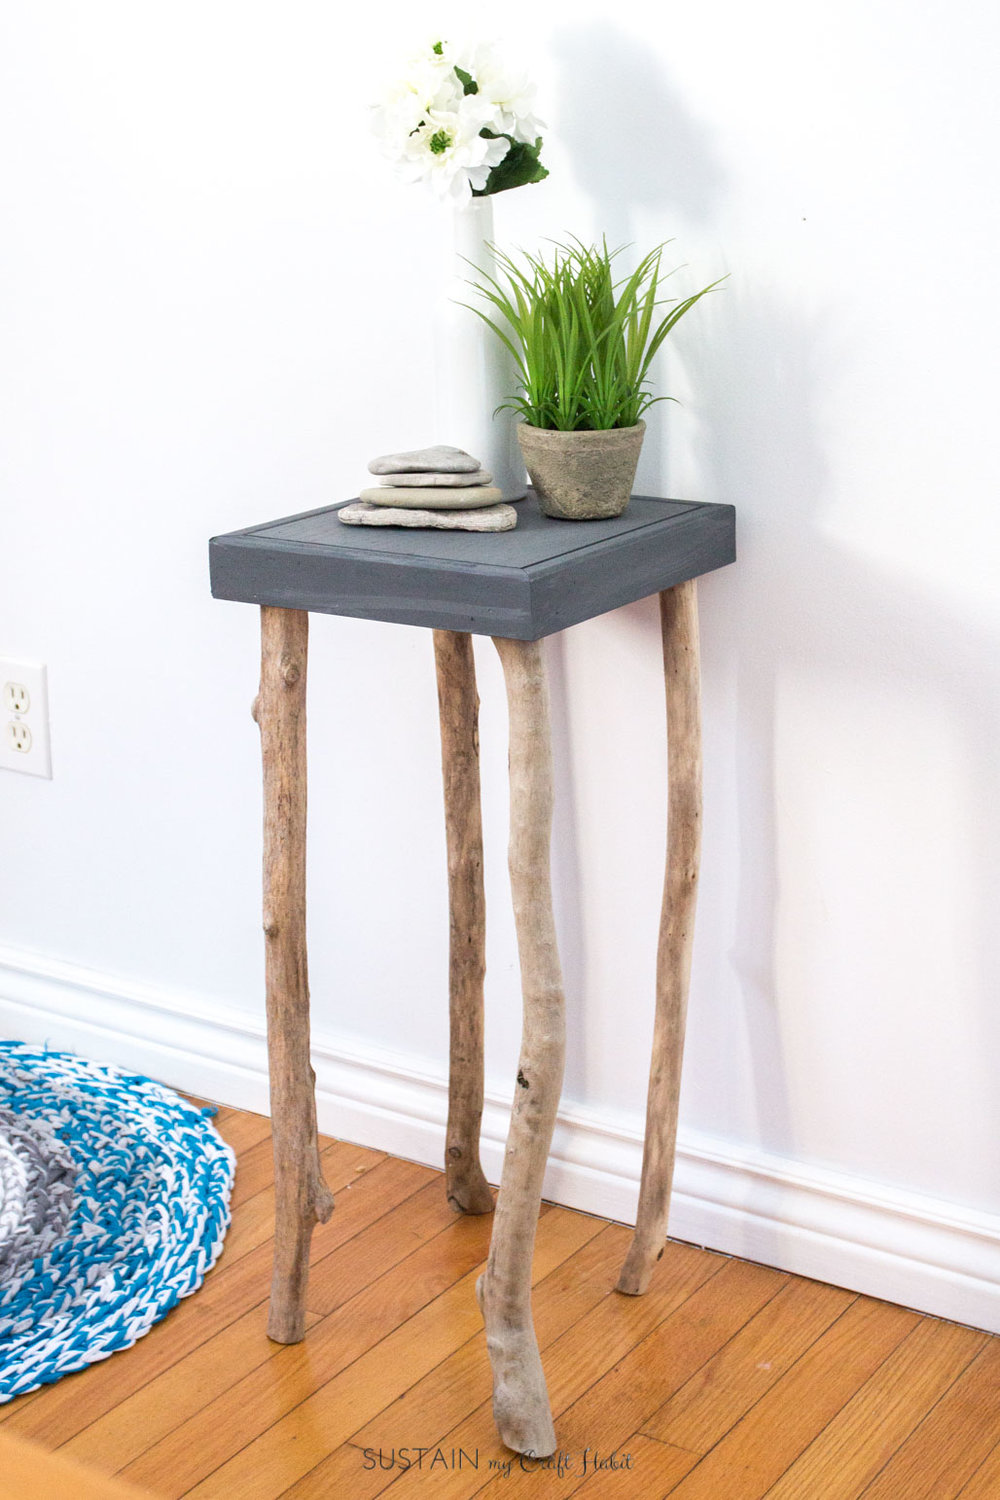 Funny story and tutorial on how to make a side table with driftwood legs. Fun and rustic coastal decor for the home or cottage.